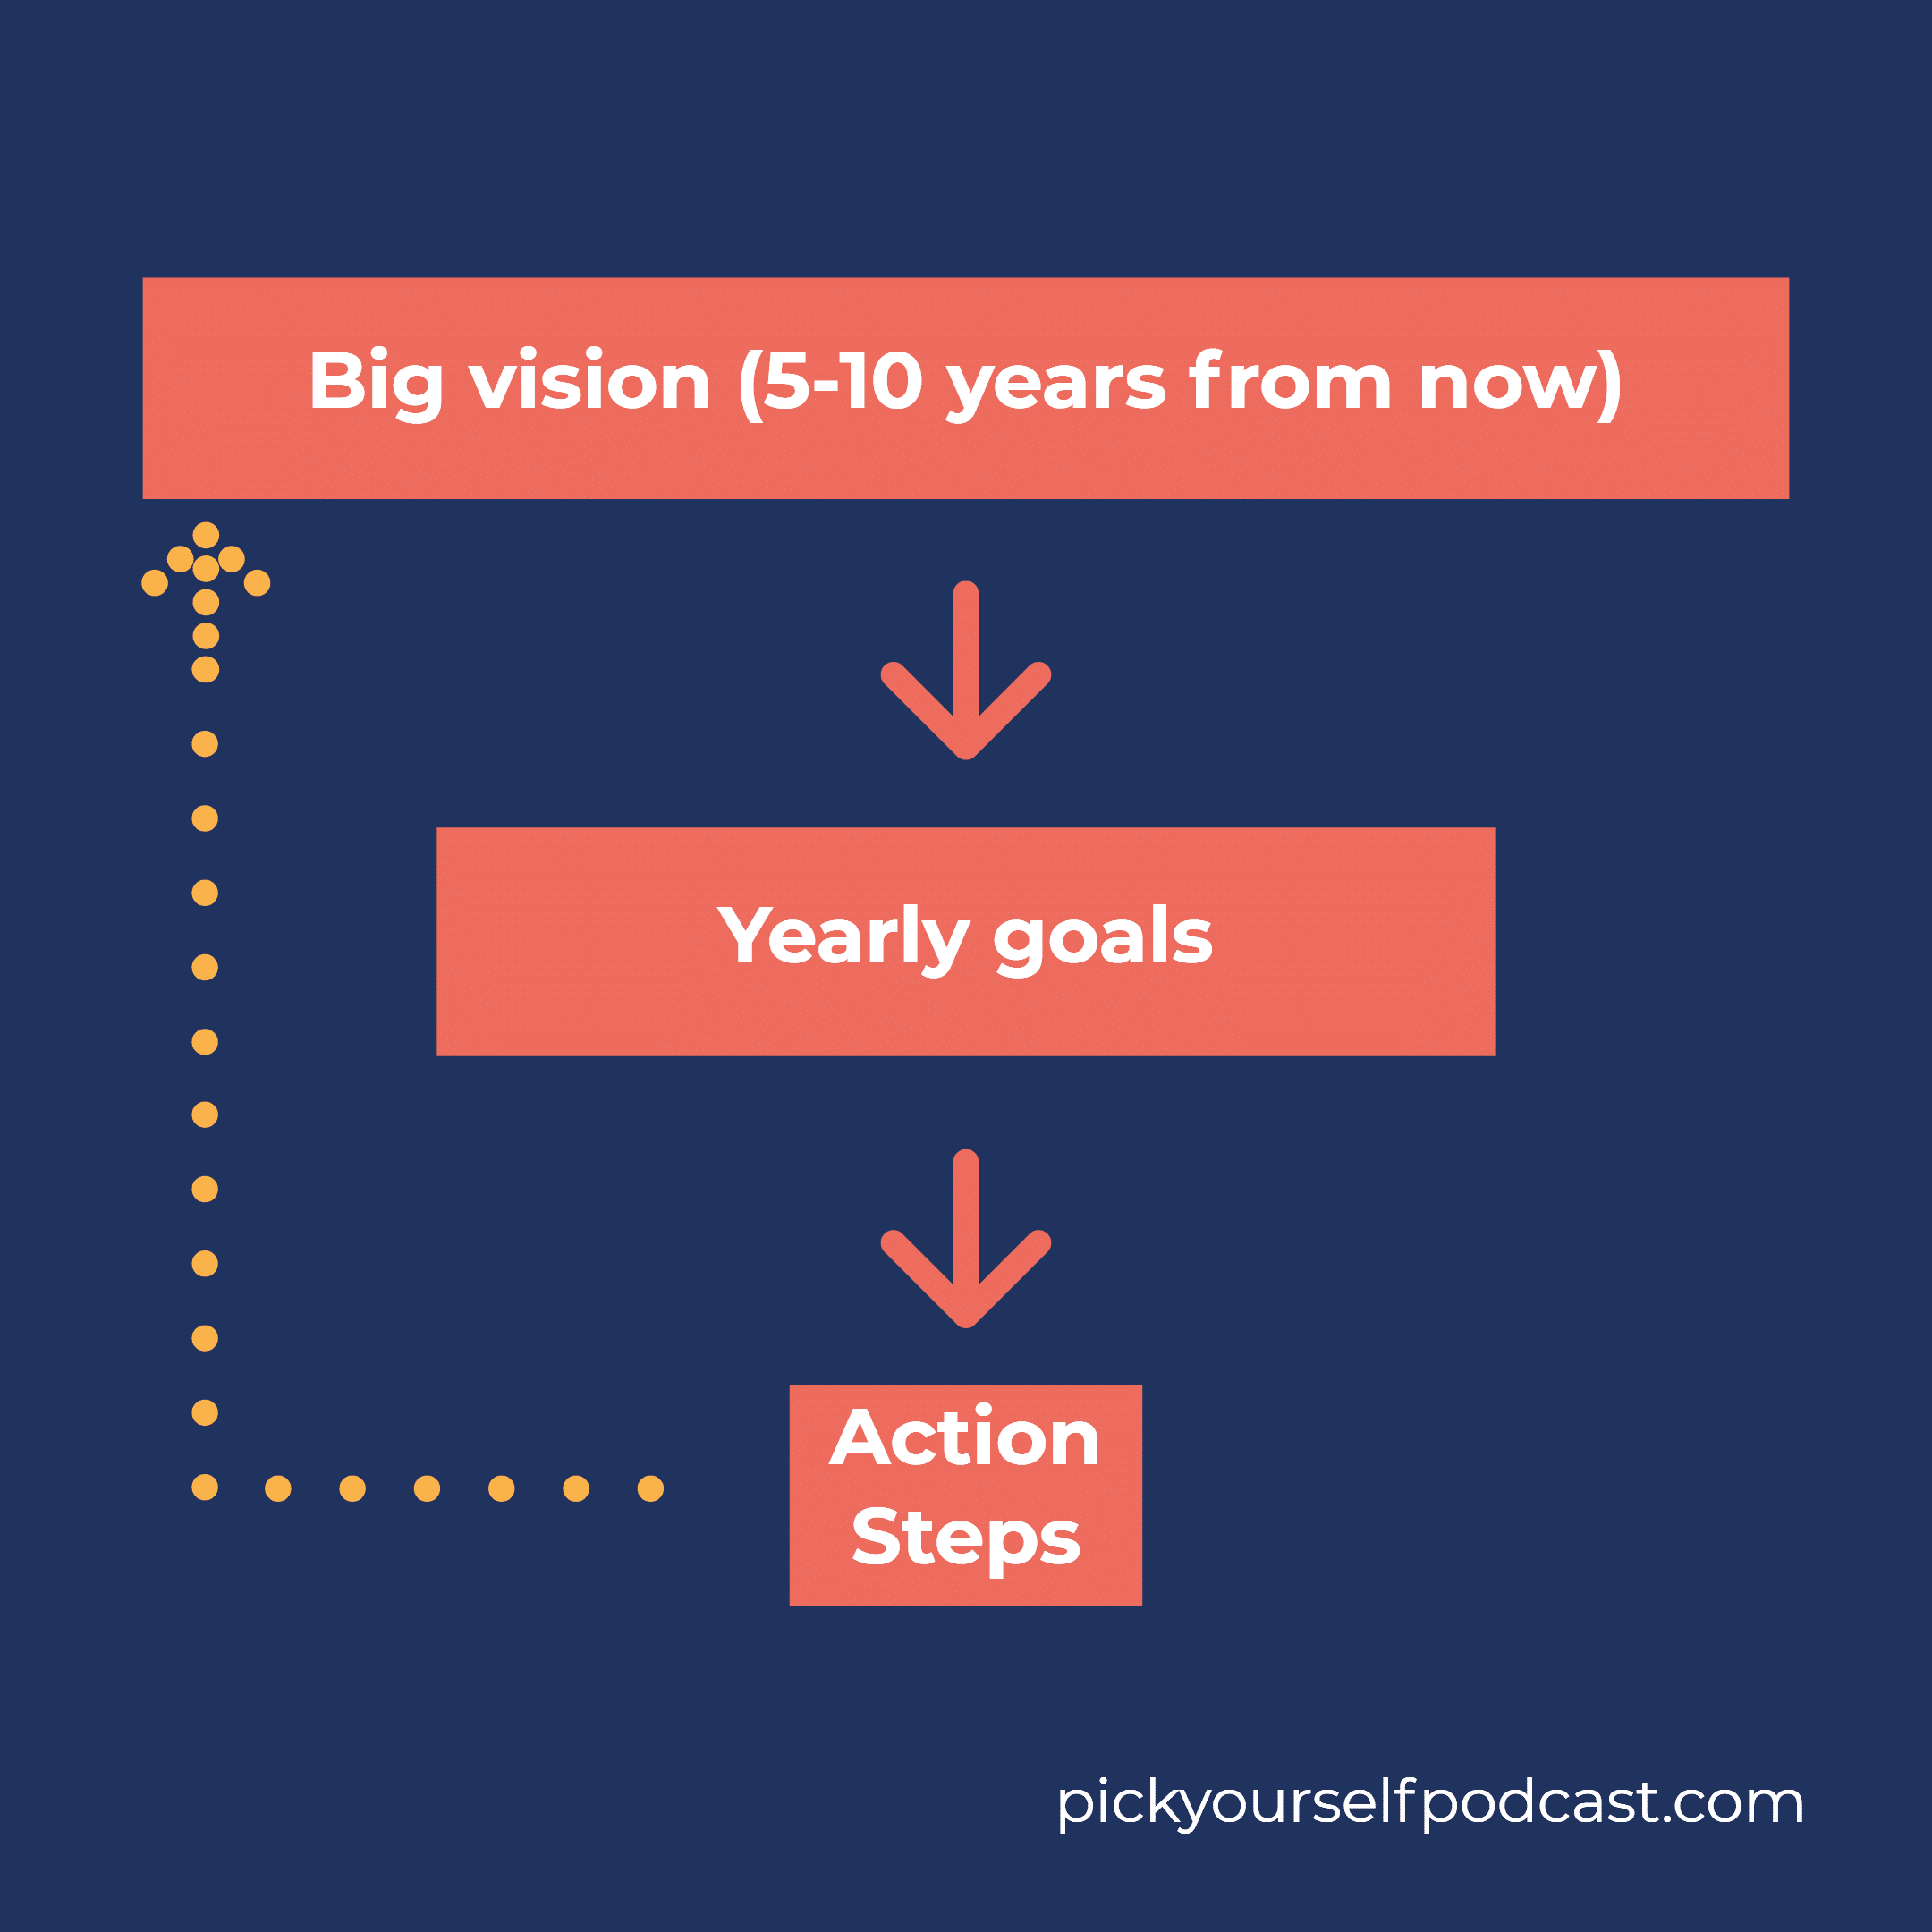 Setting goals as a music producer or DJ visual 01. It shows a funnel that leads from big vision to yearly goals to action steps.